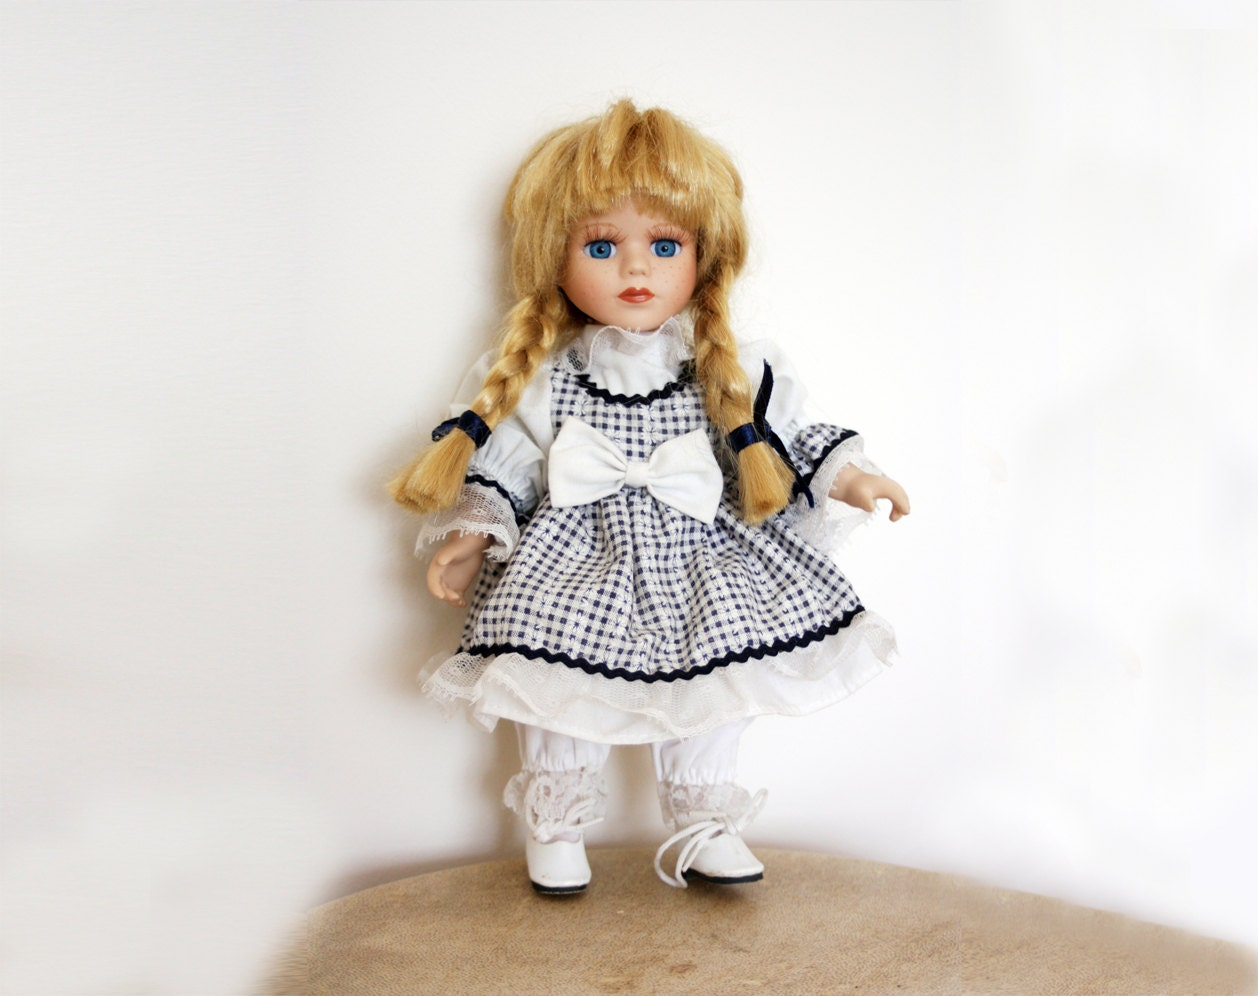 vintage german doll 1970s porcelain doll collectible doll